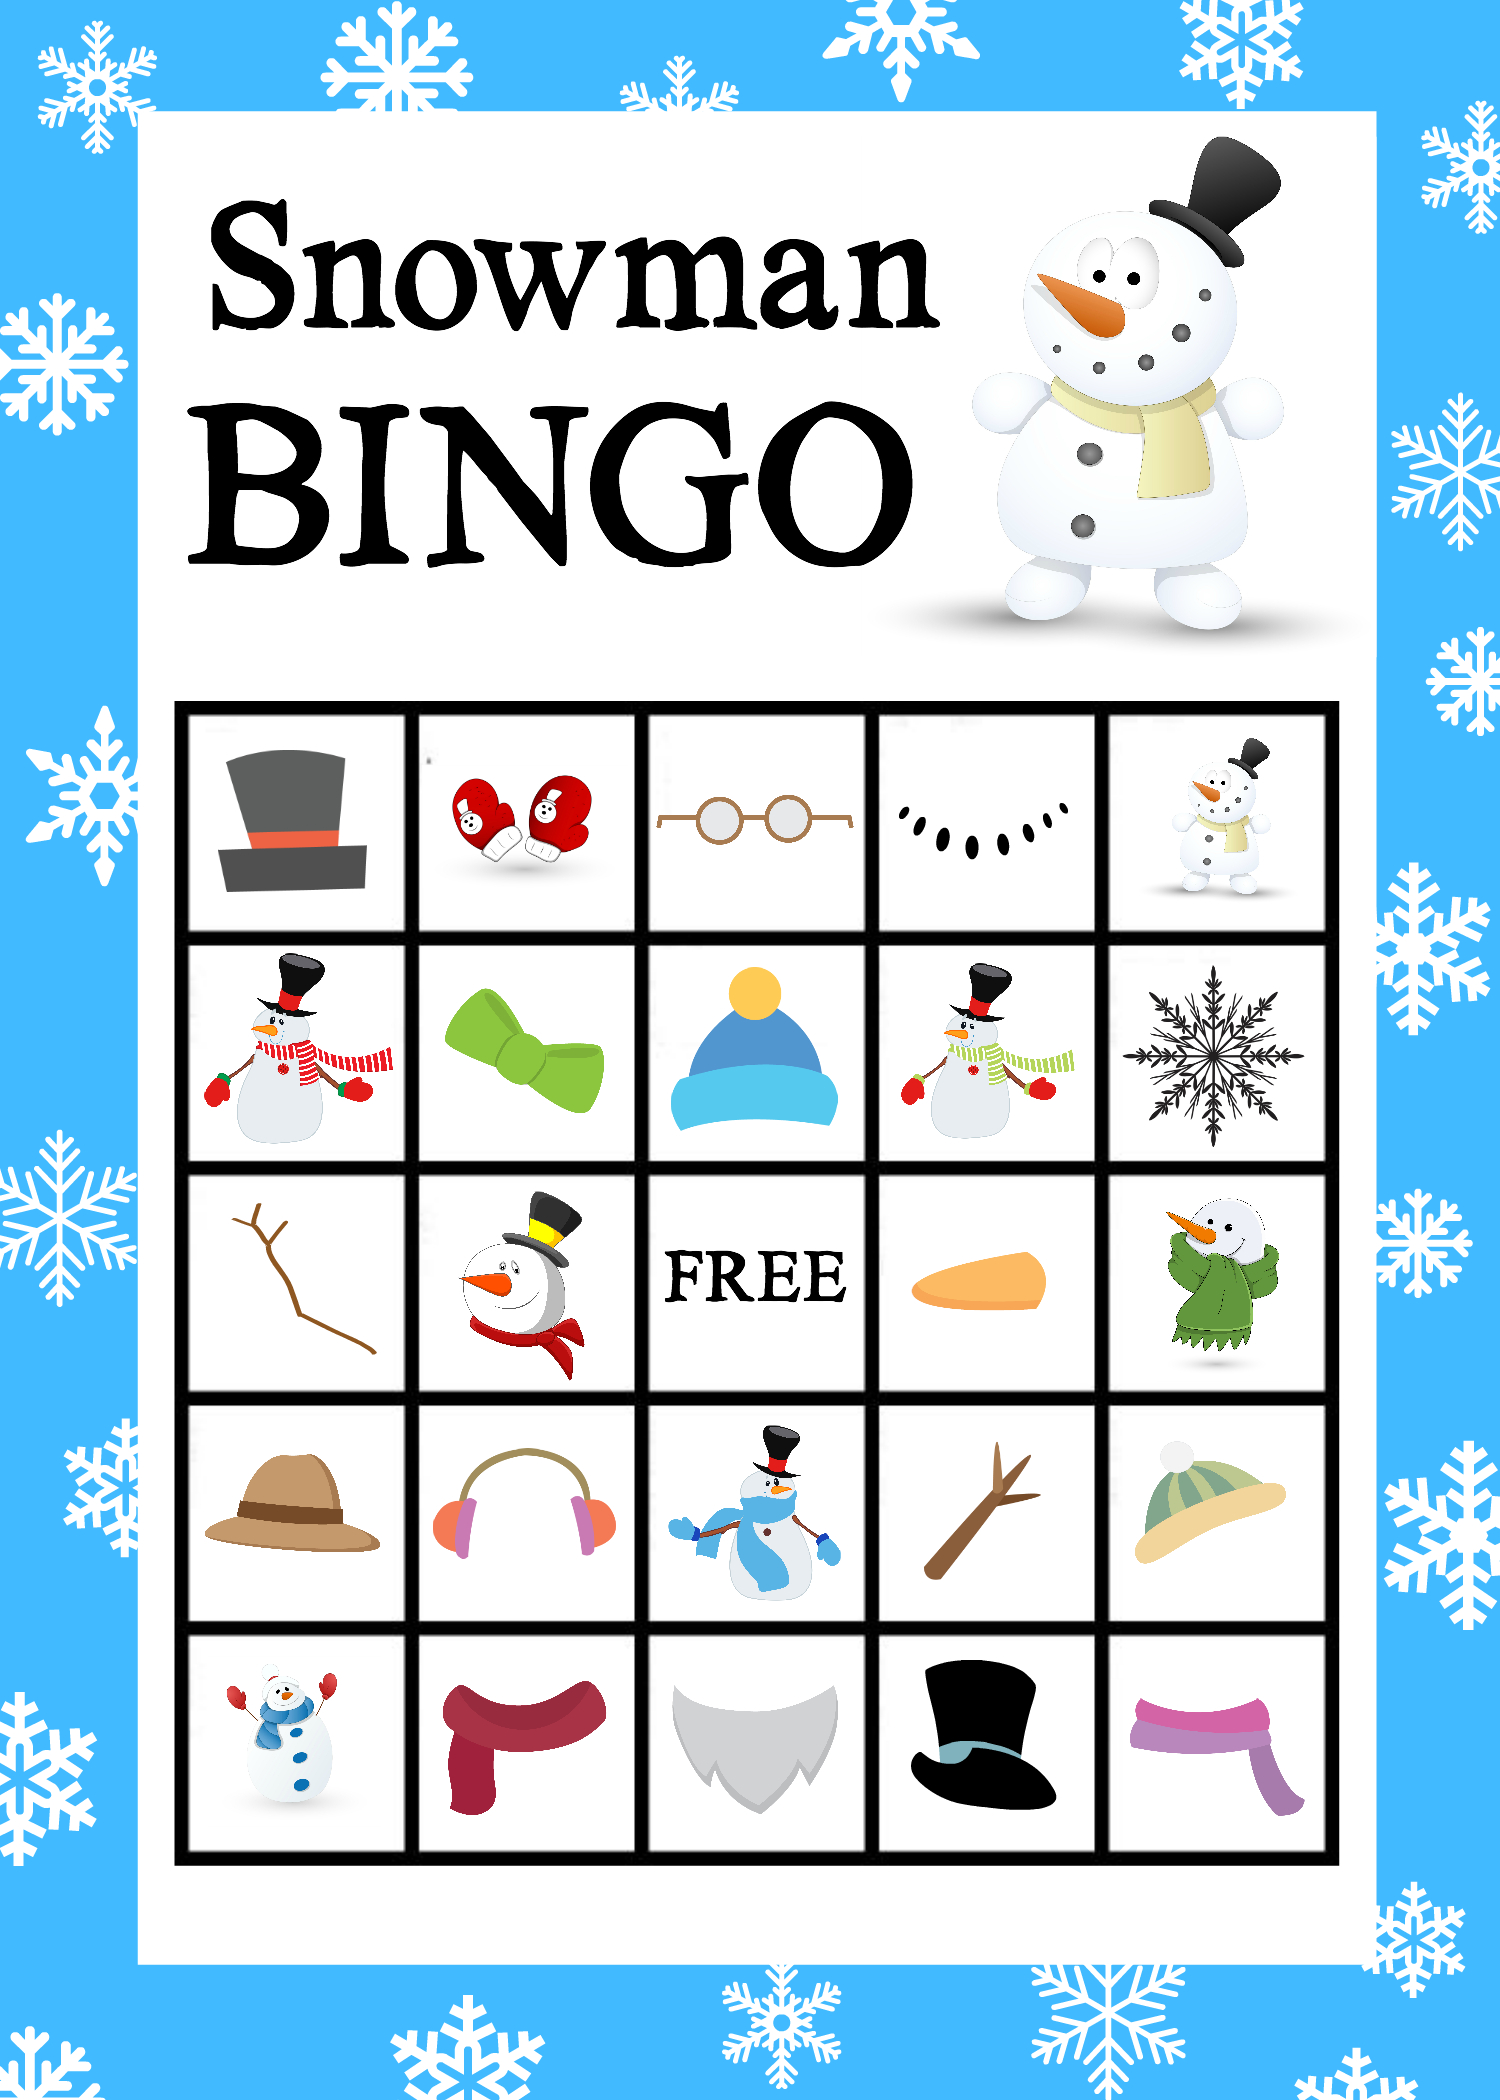 Printable Snowman Bingo Game | School Holiday Party, Snowman